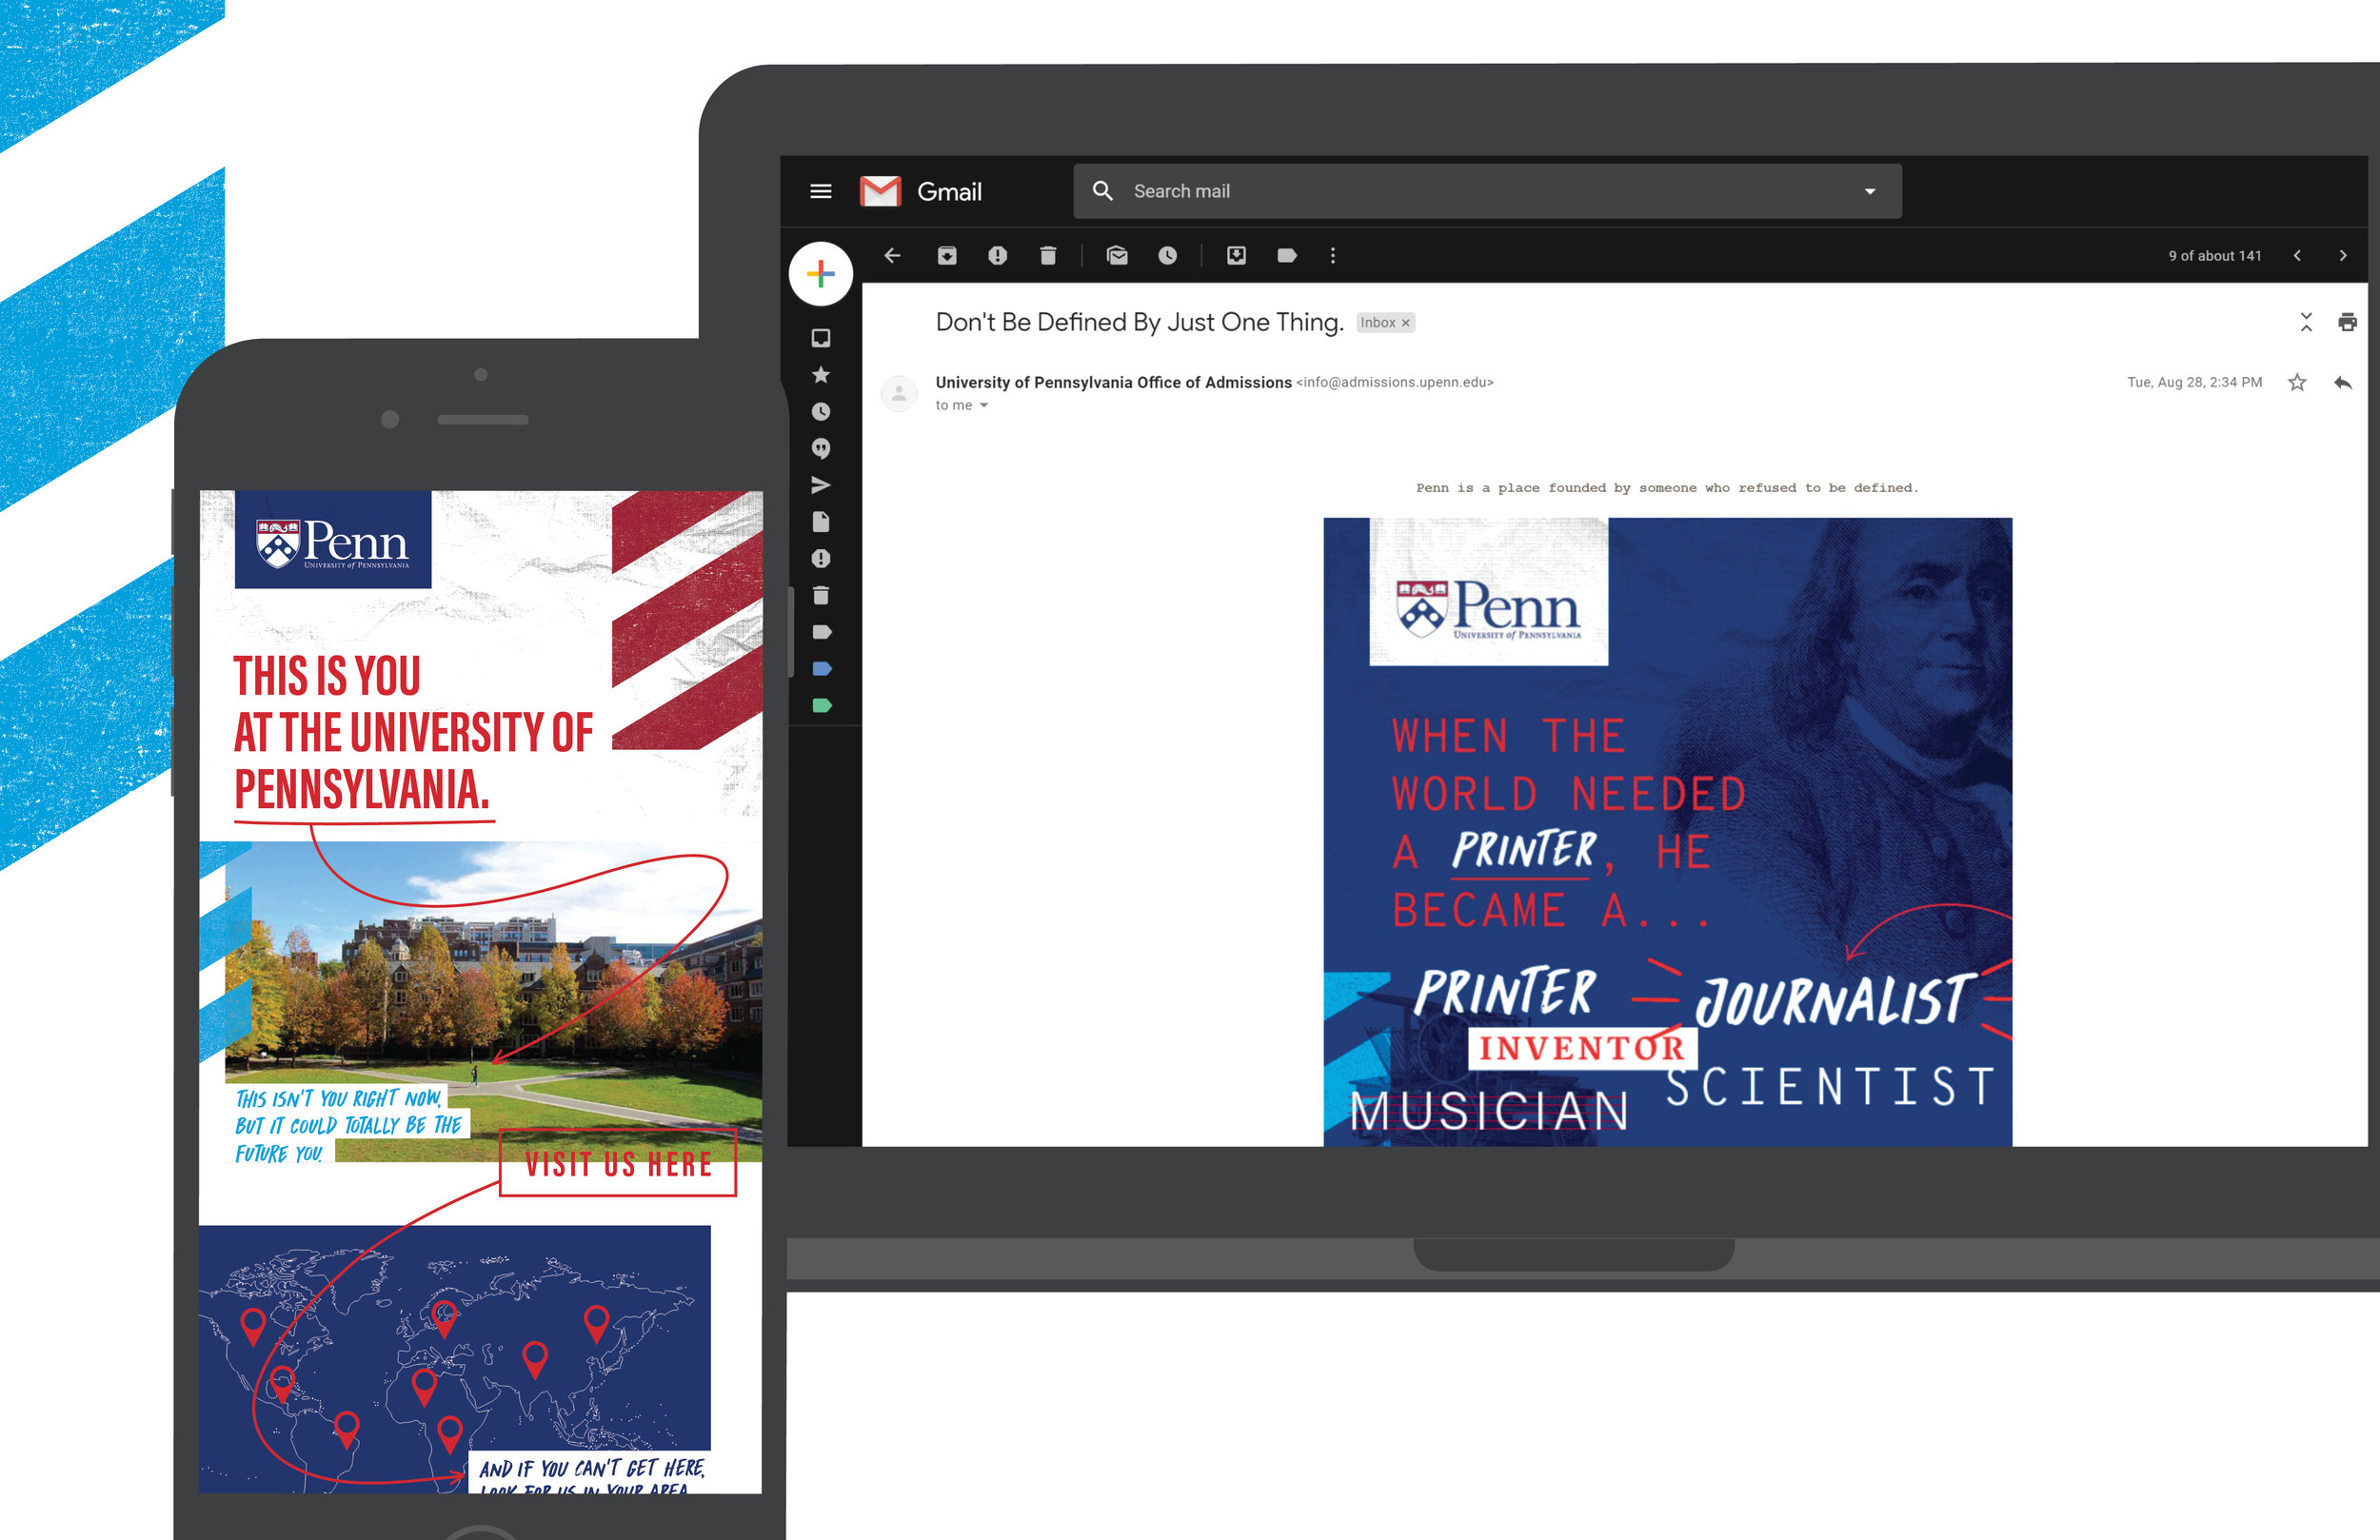 - The search email campaign features a series of messages that drive traffic to either the microsite or website, based on responder data. With an average search campaign reaching 300k+ students, the messages must convey the distinctive identity and high-caliber academic offerings of Penn.